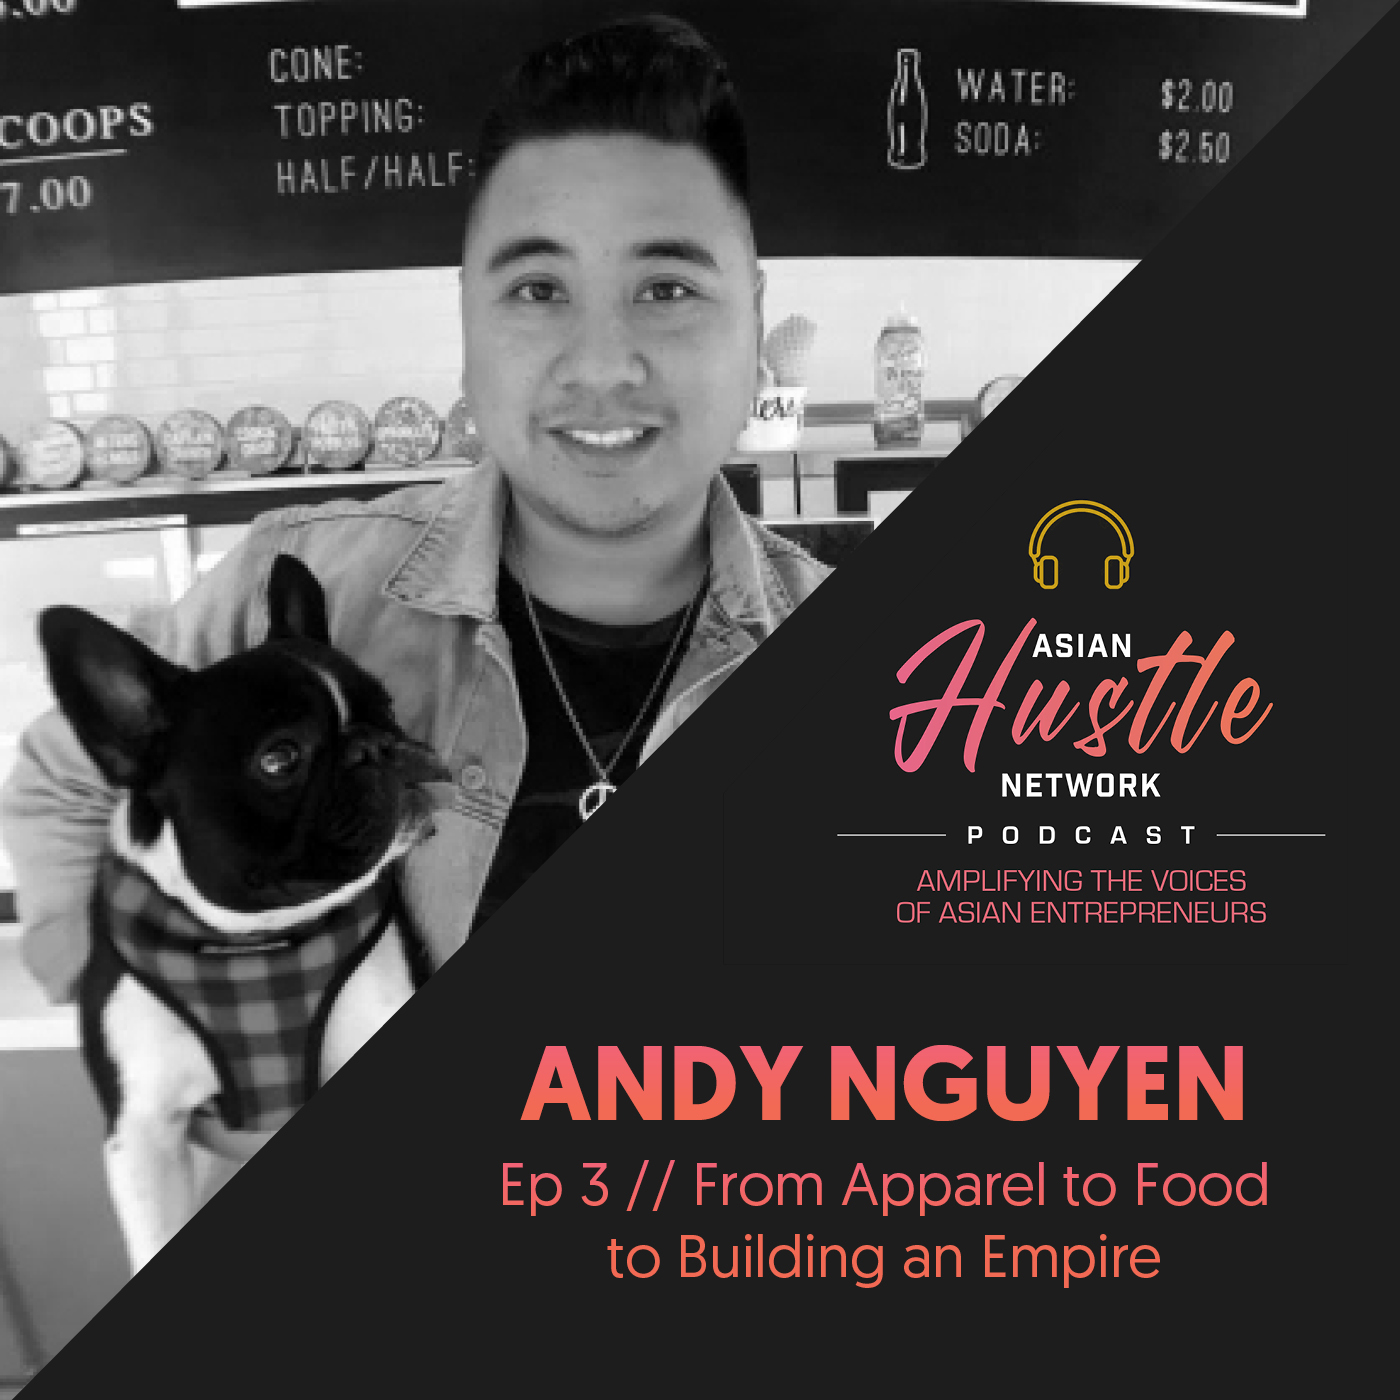 www.asianhustlenetwork.com: Andy Nguyen // Ep 3 // From Apparel to Food to Building an Empire